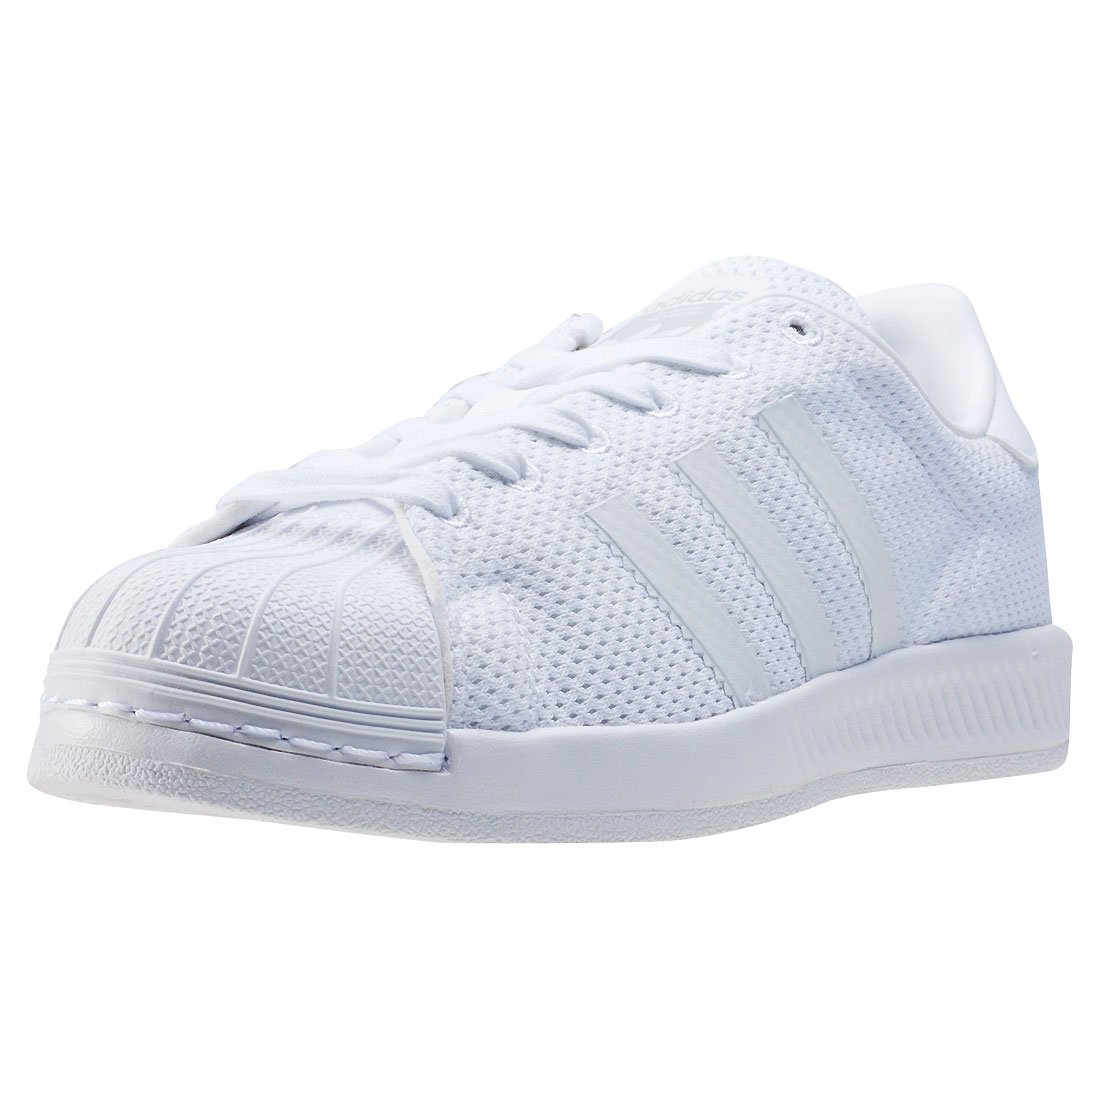 cc91f7e934cf7 adidas Superstar Bounce By1589